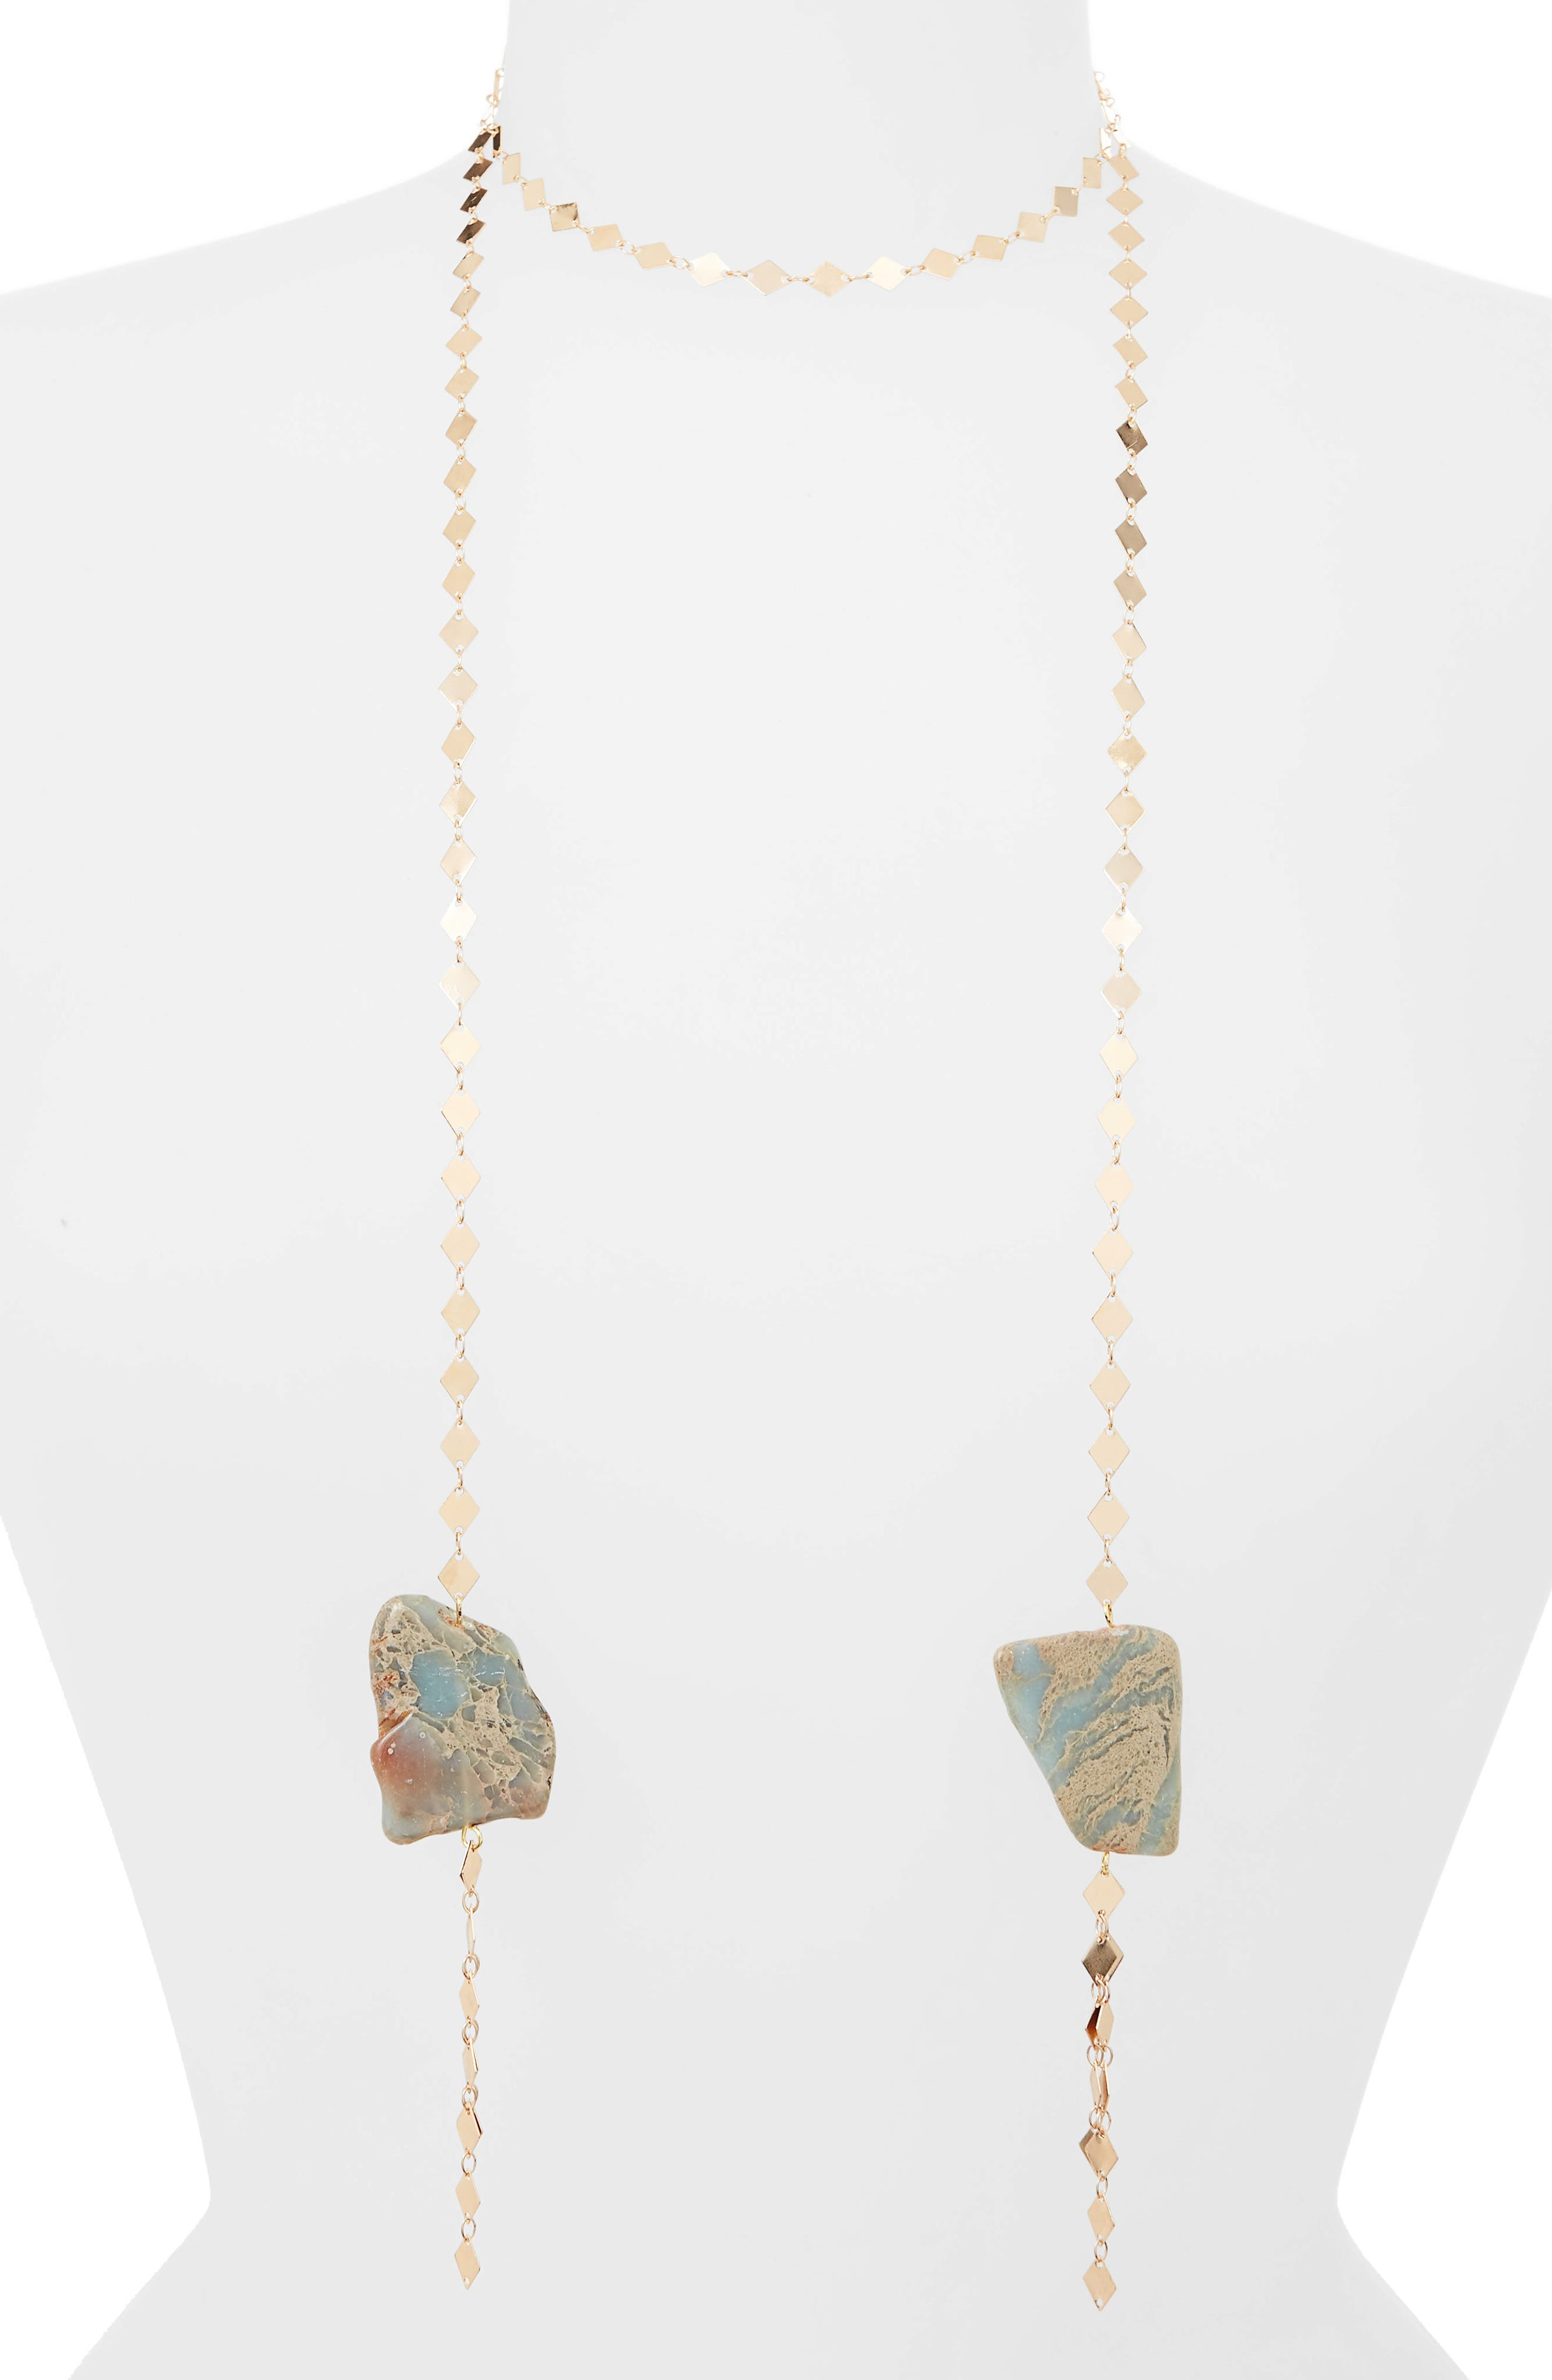 Becca Lariat Necklace,                         Main,                         color, Blue/ Gold